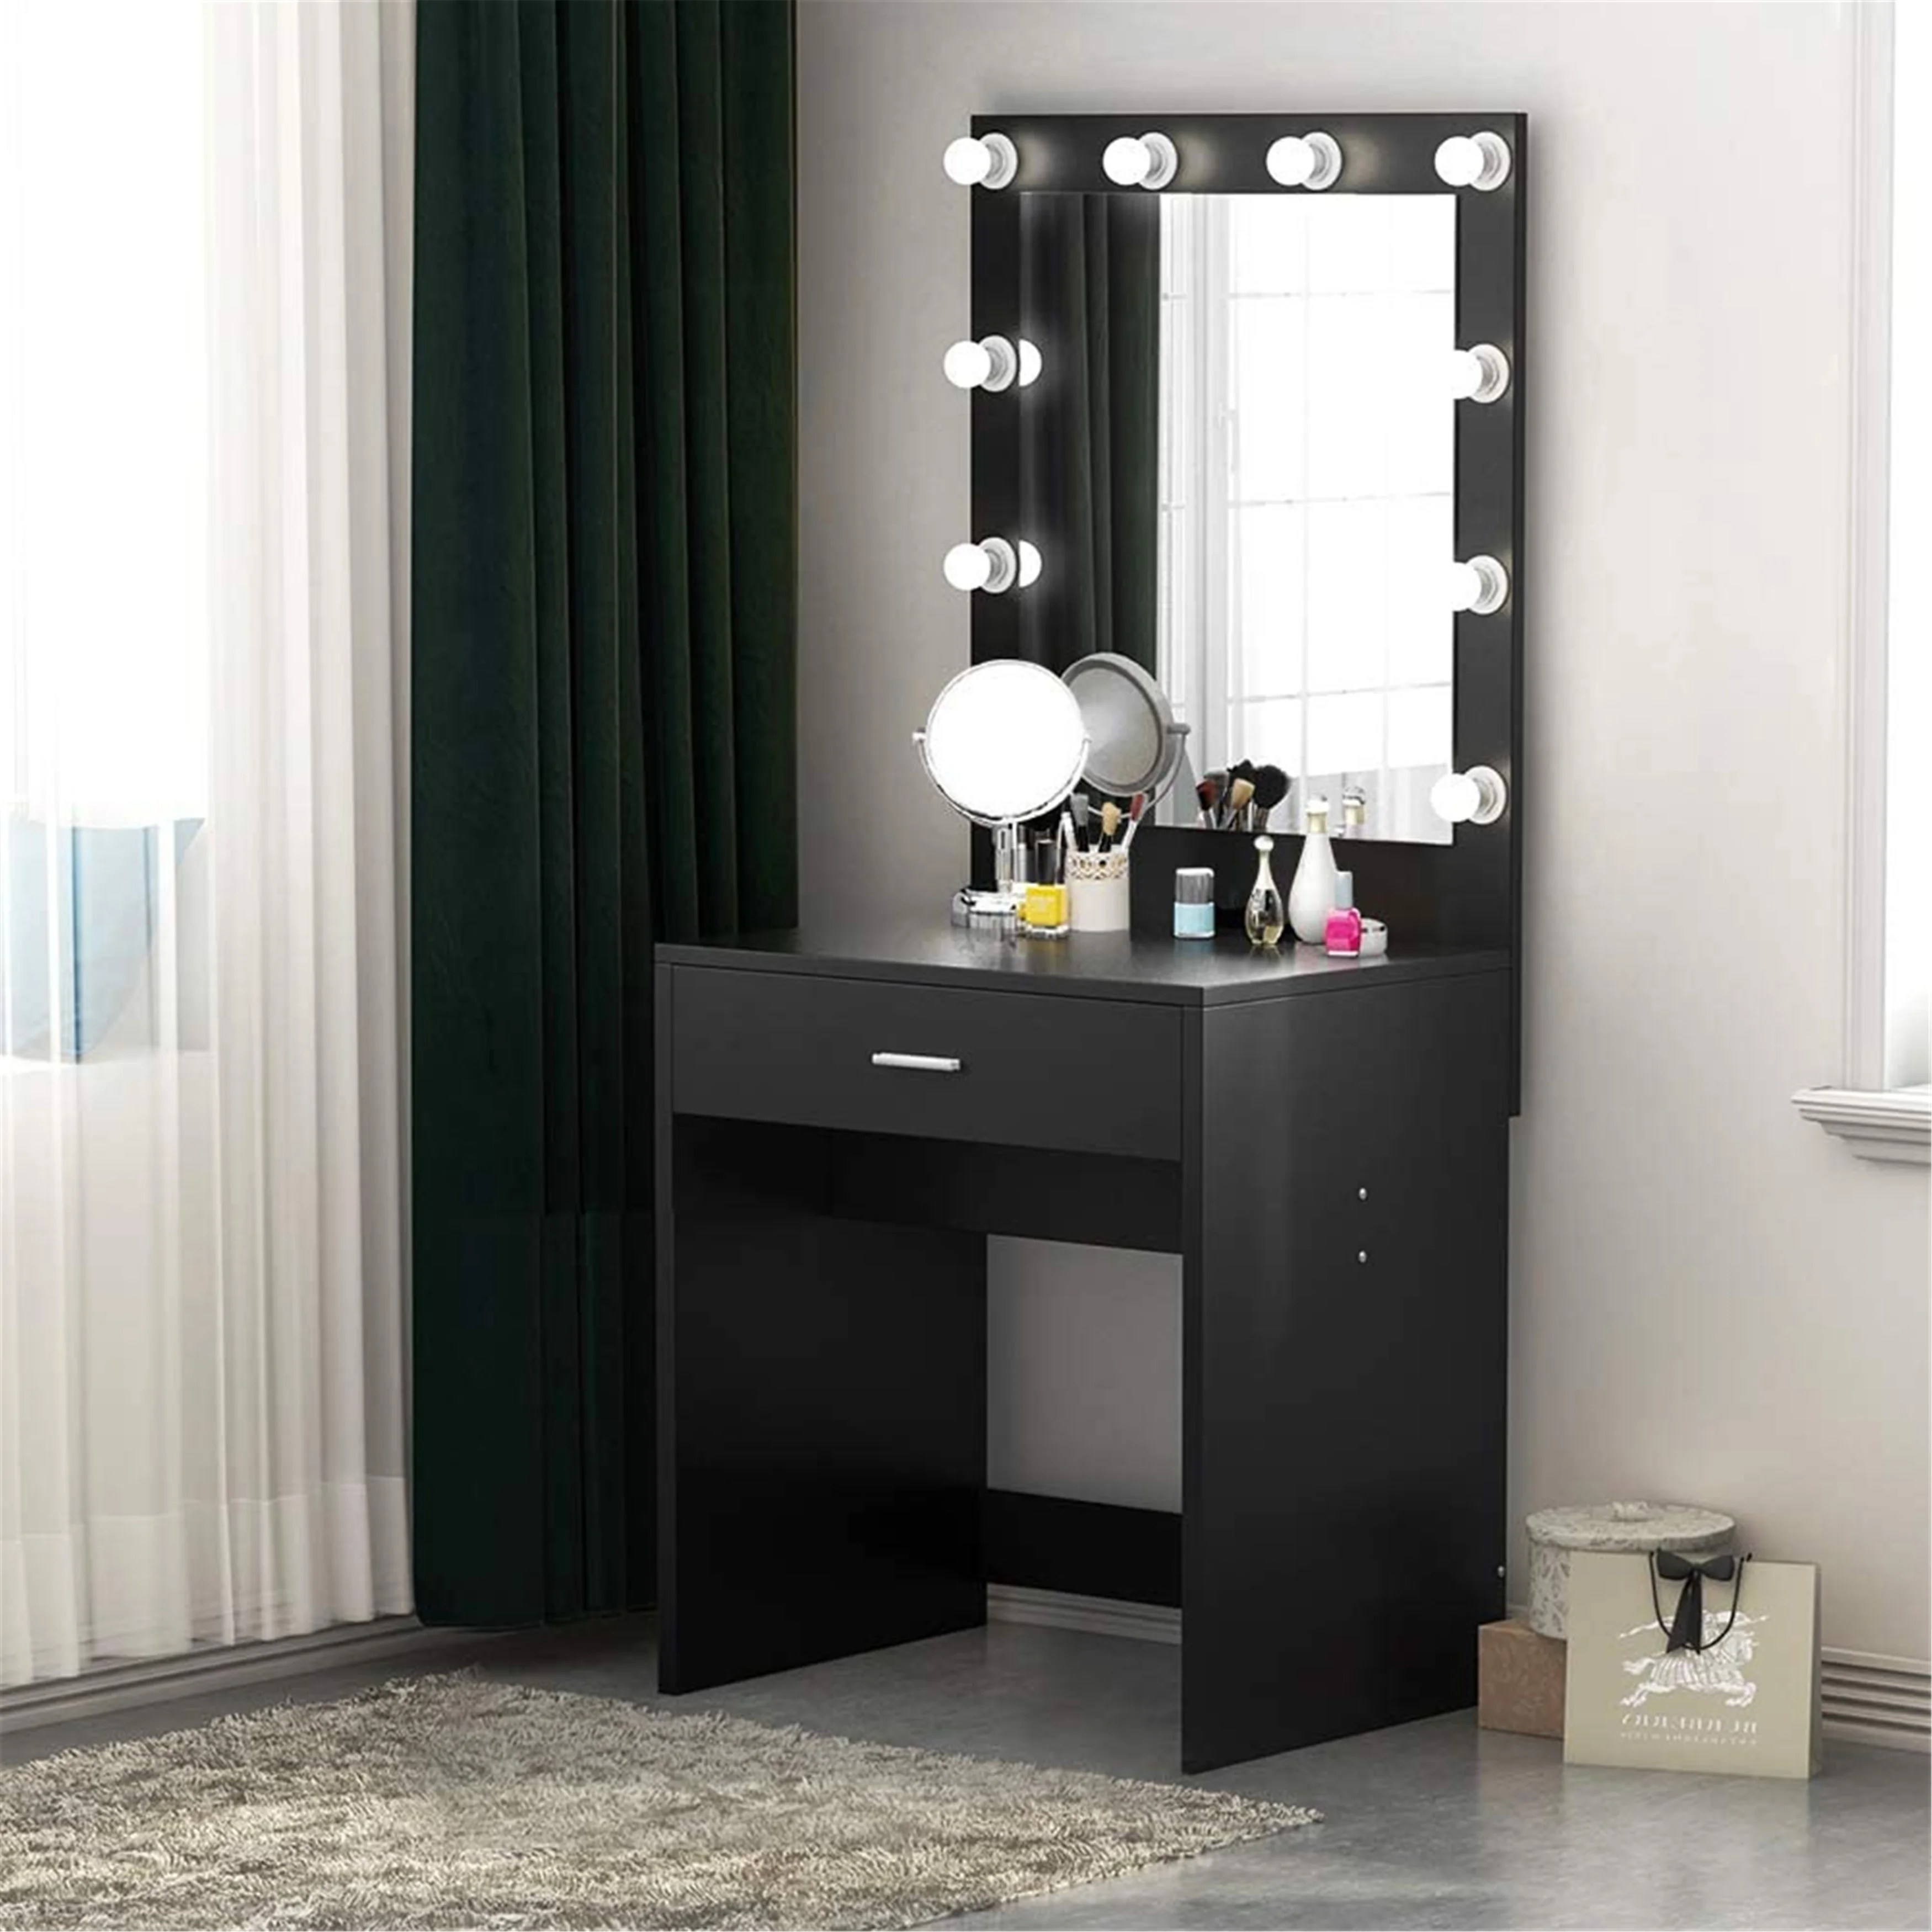 makeup vanity with lighted mirror dressing table dresser desk for bedroom stool not included